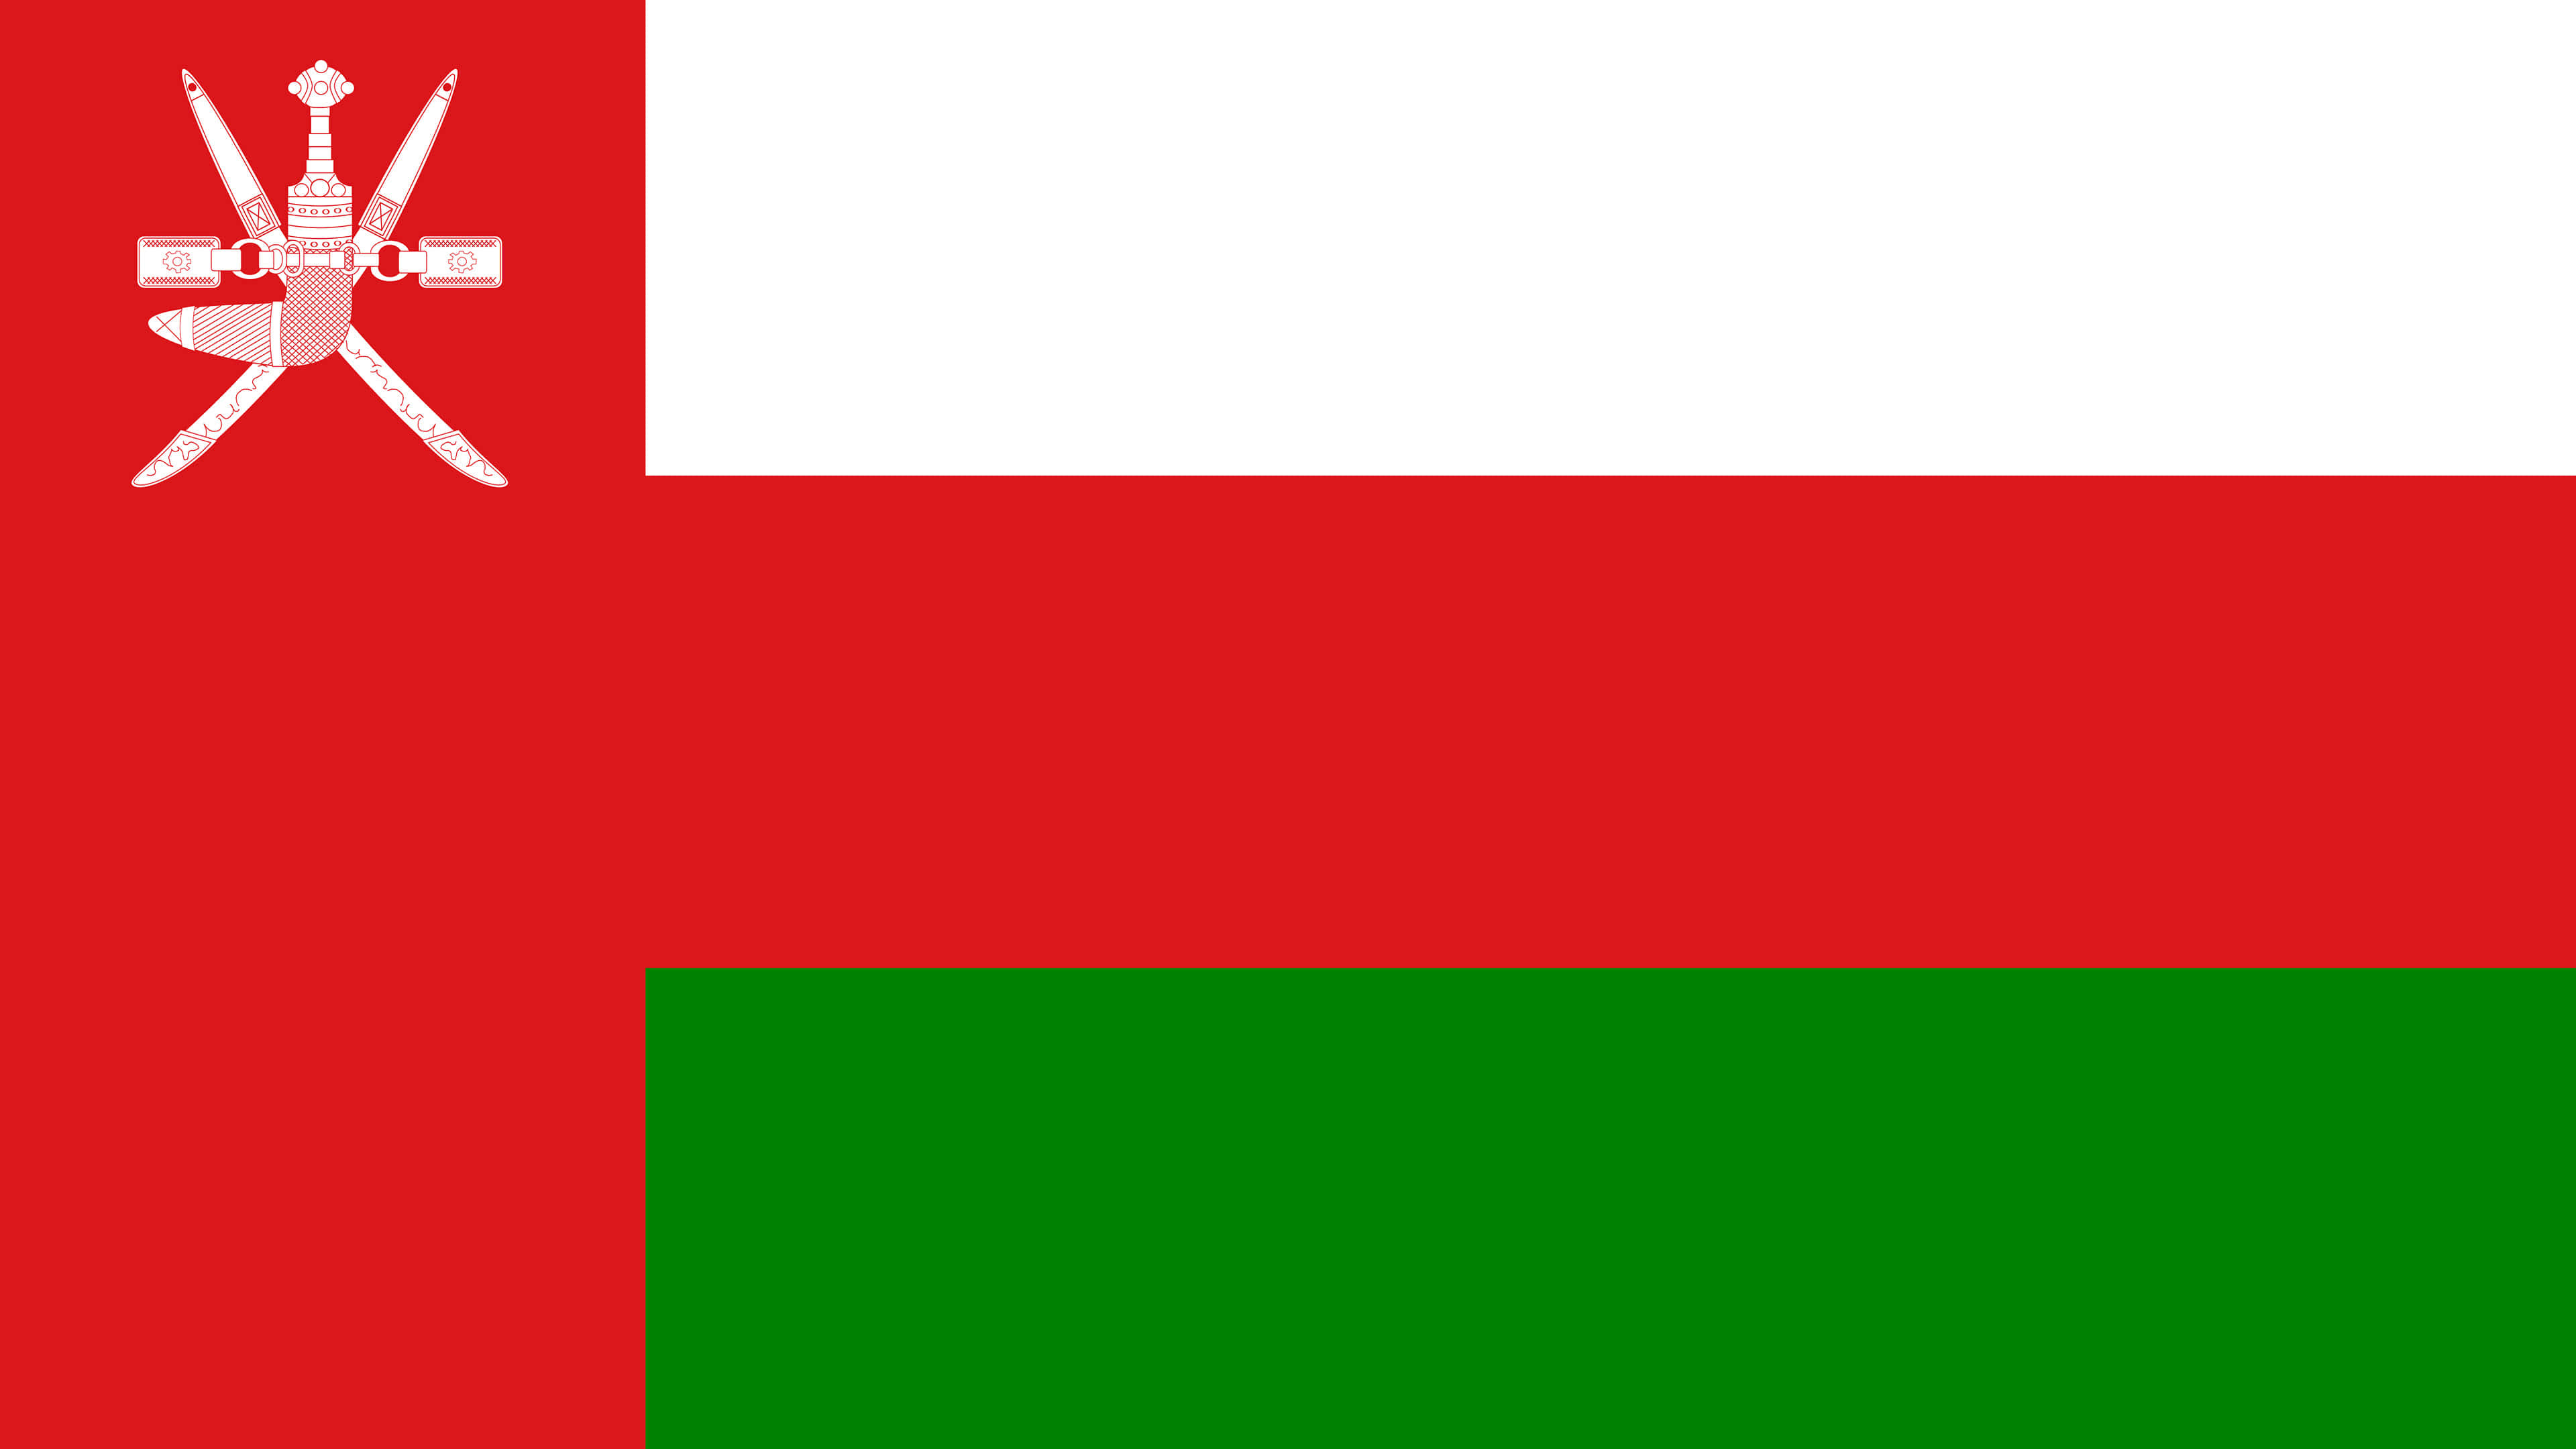 oman flag uhd 4k wallpaper